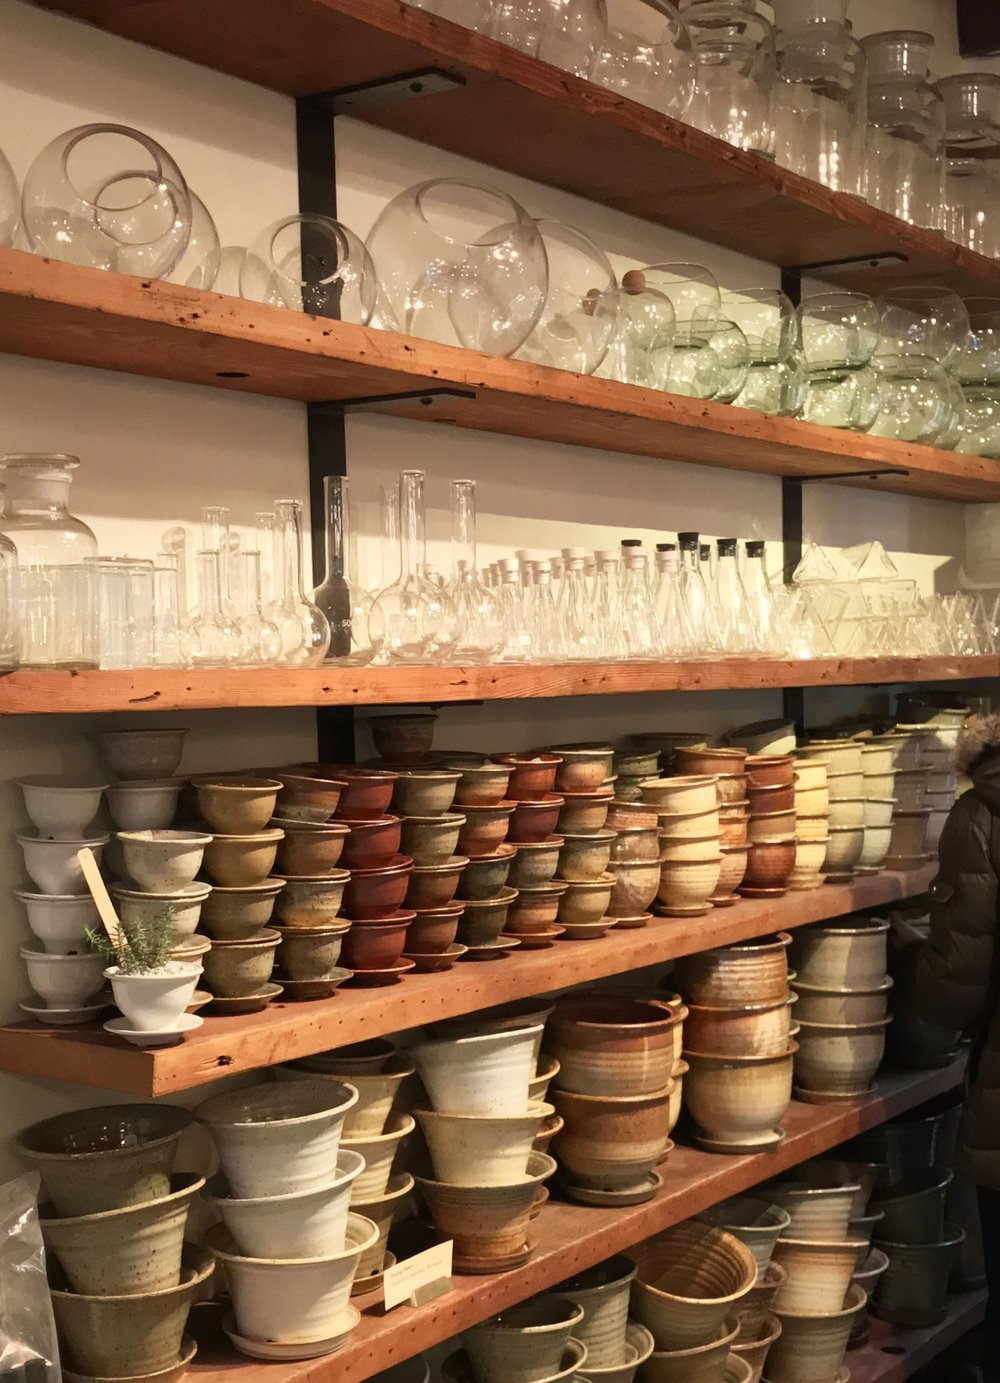 Lots of PNW hand-made pots and glass vessels for hanging compositions.